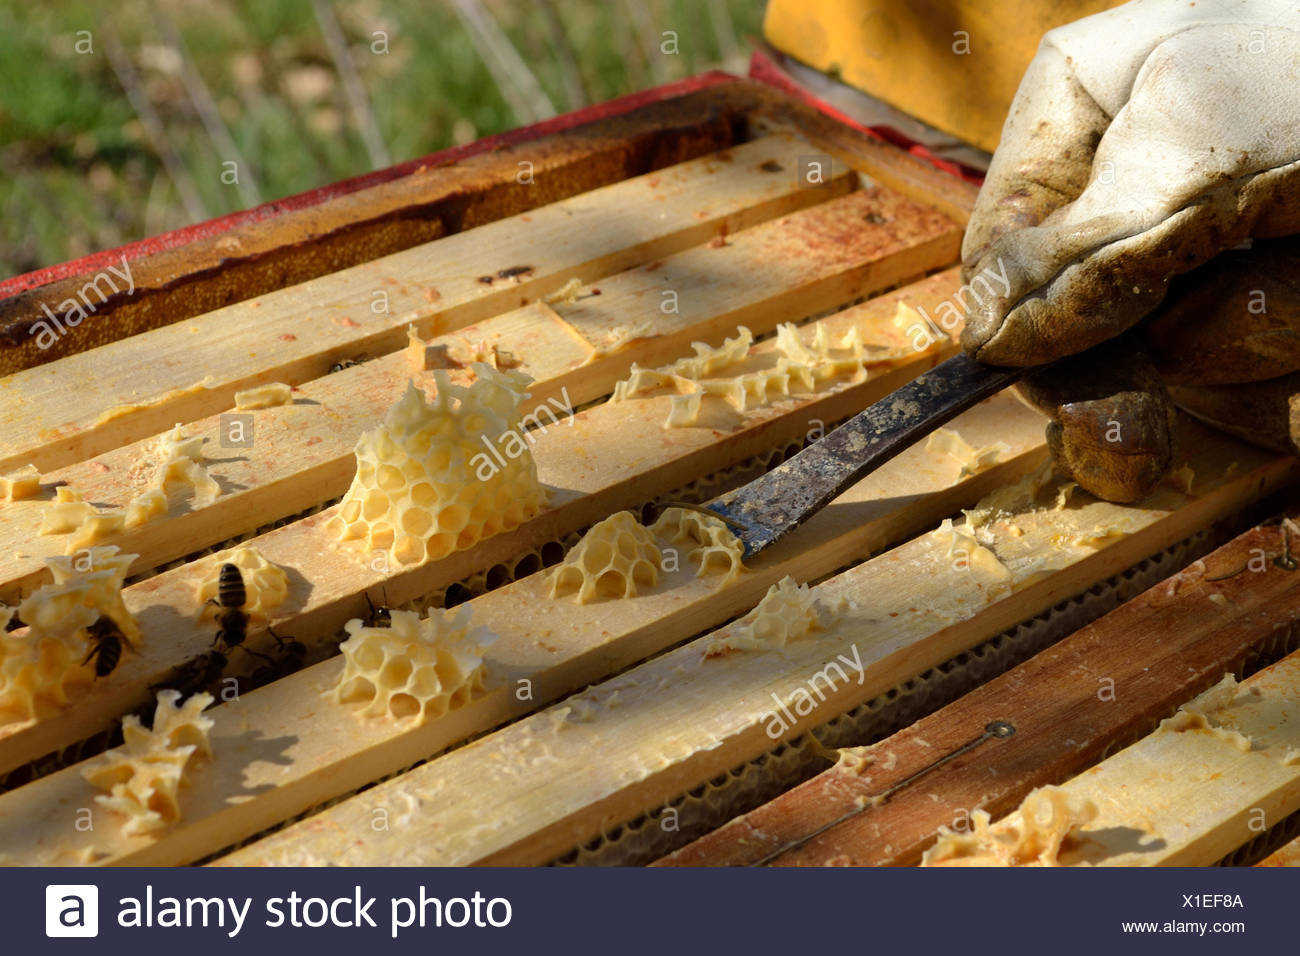 Beekeeper scrapes beeswax from honeycomb - Stock Image